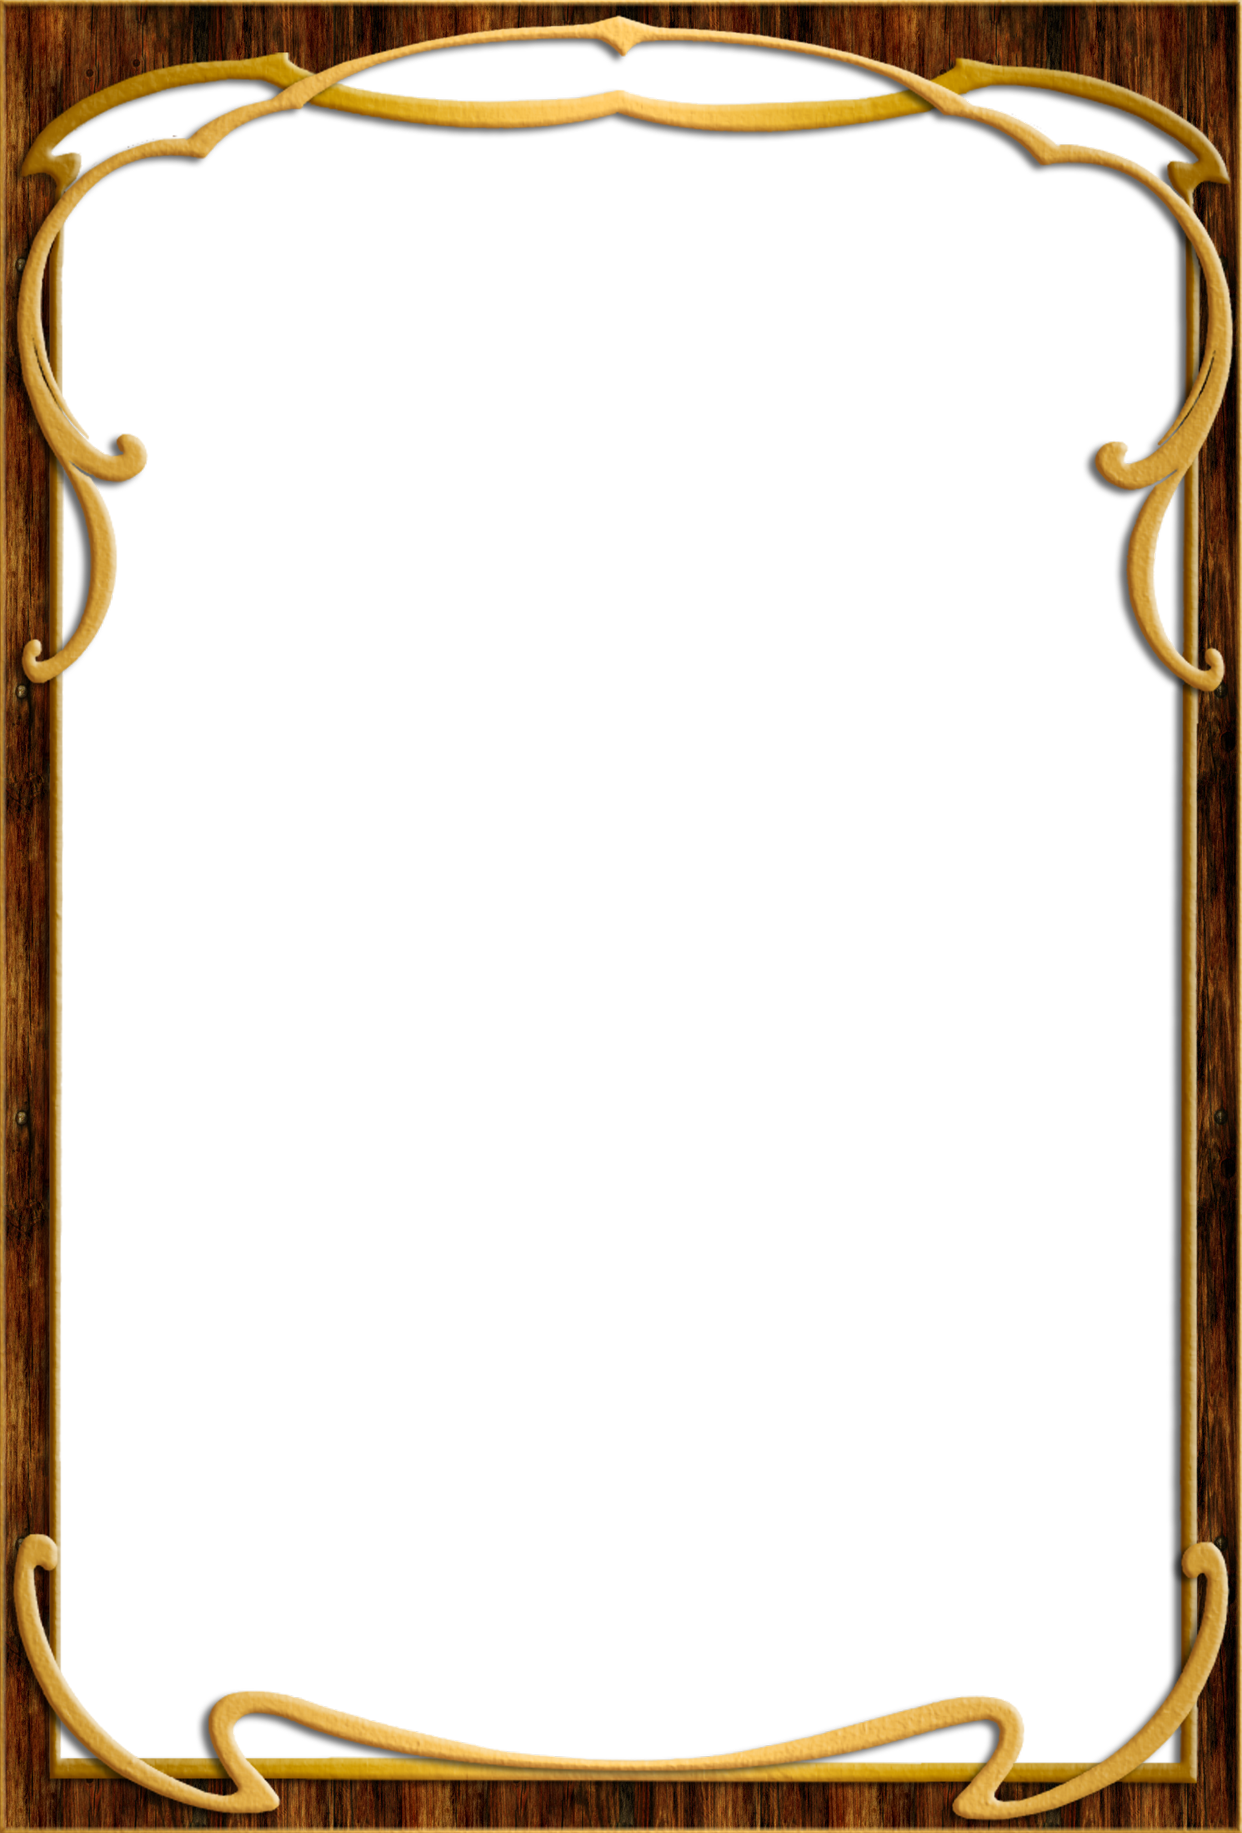 Photo frame png images, photo frame png Transparent.